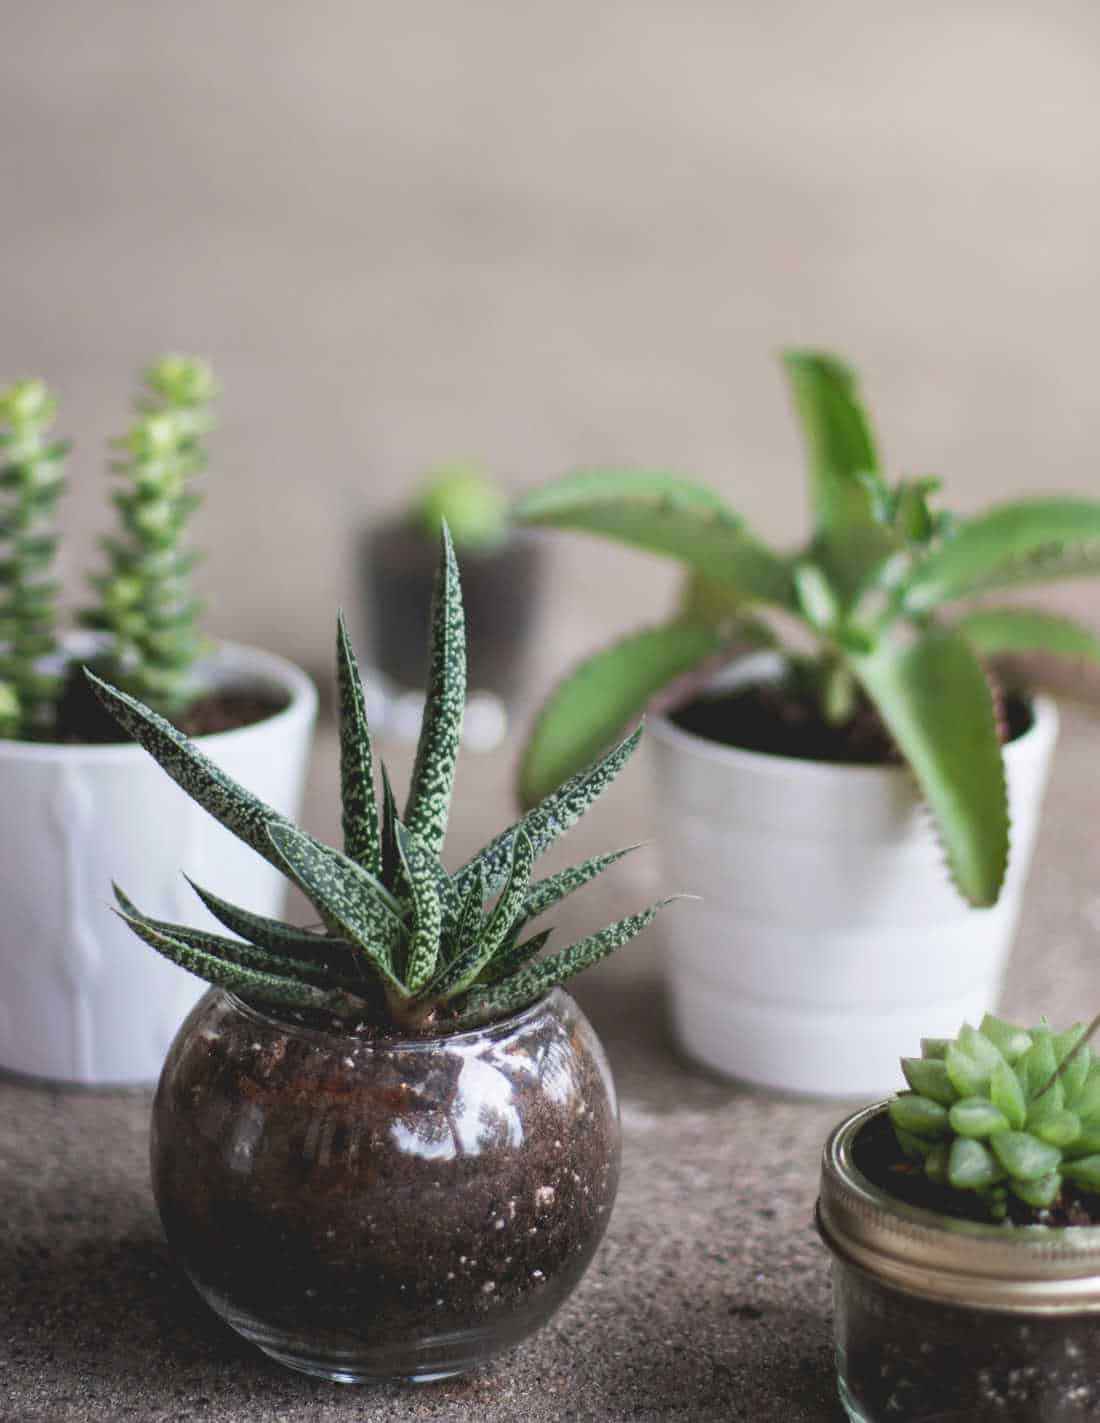 a picture of house plants